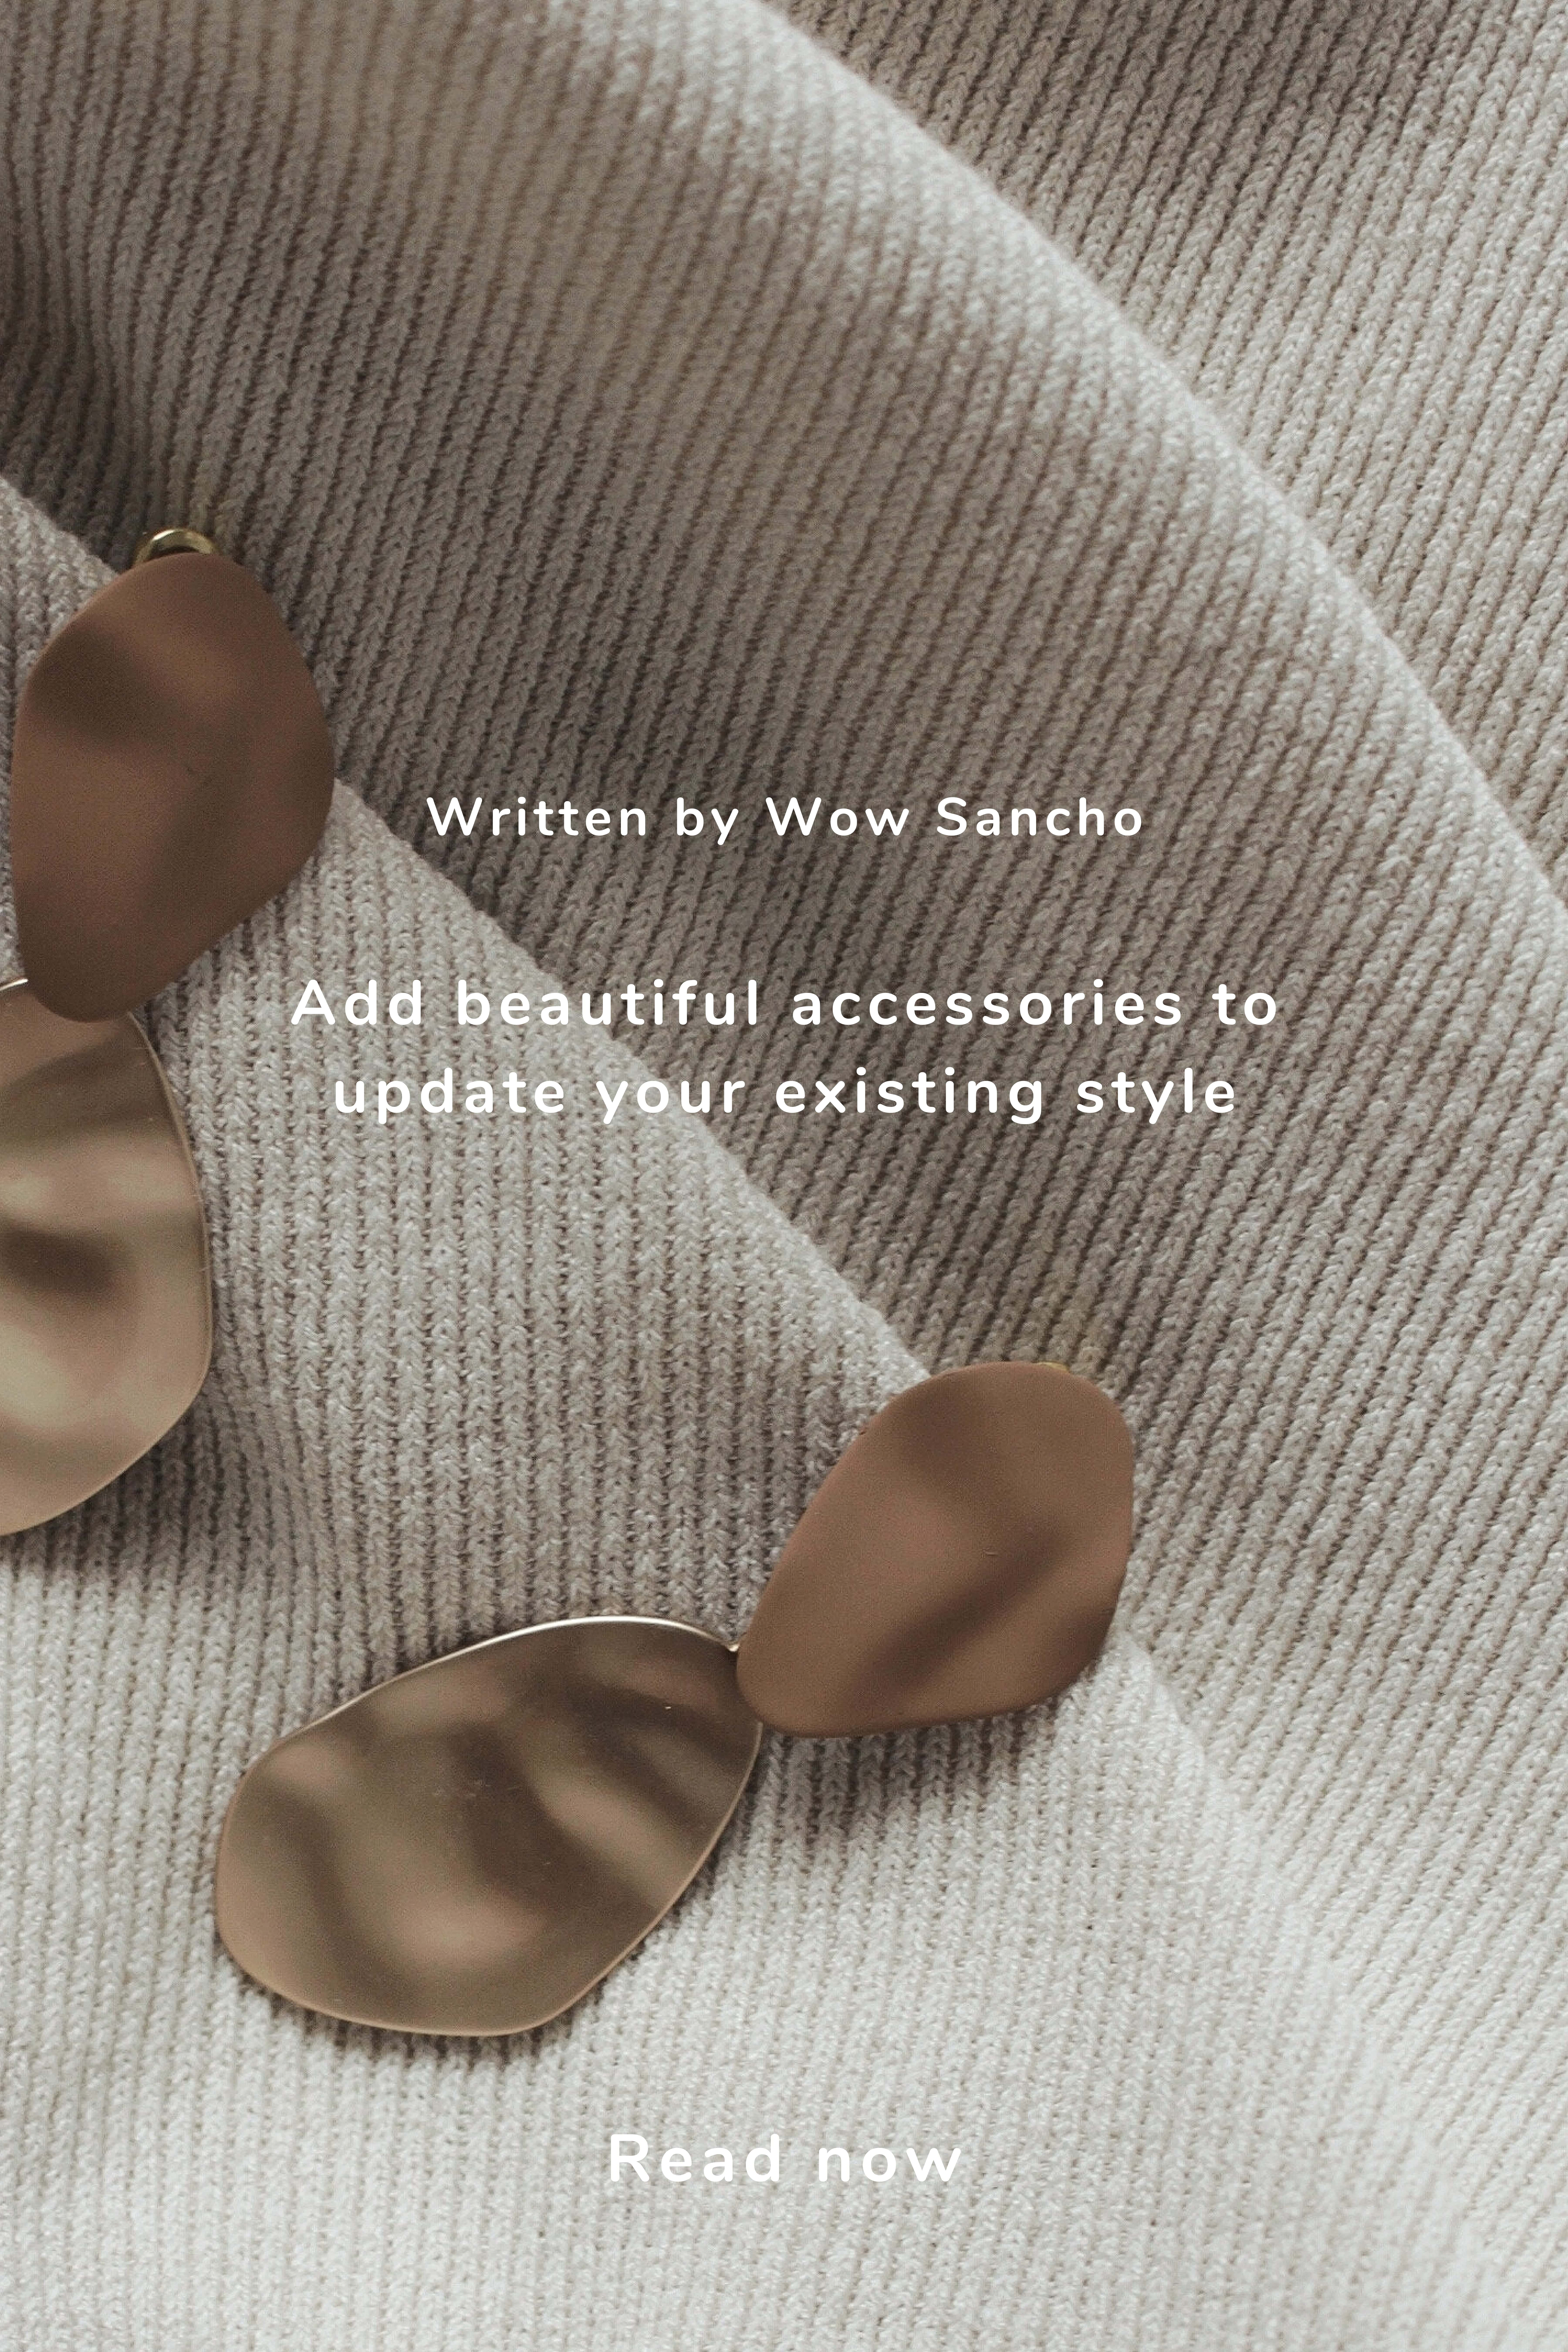 Add beautiful accessories to update your existing style